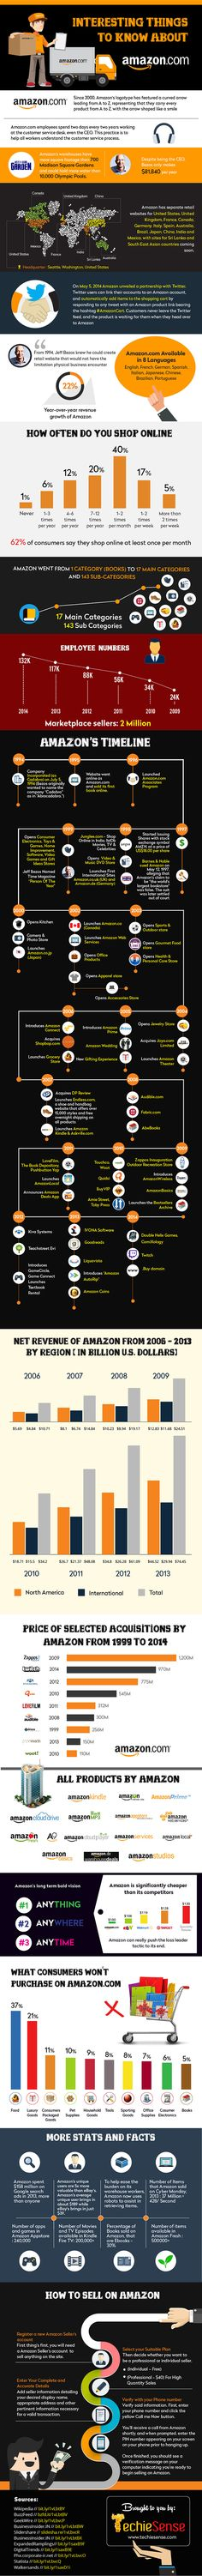 Interesting Things to Know about Amazon.com